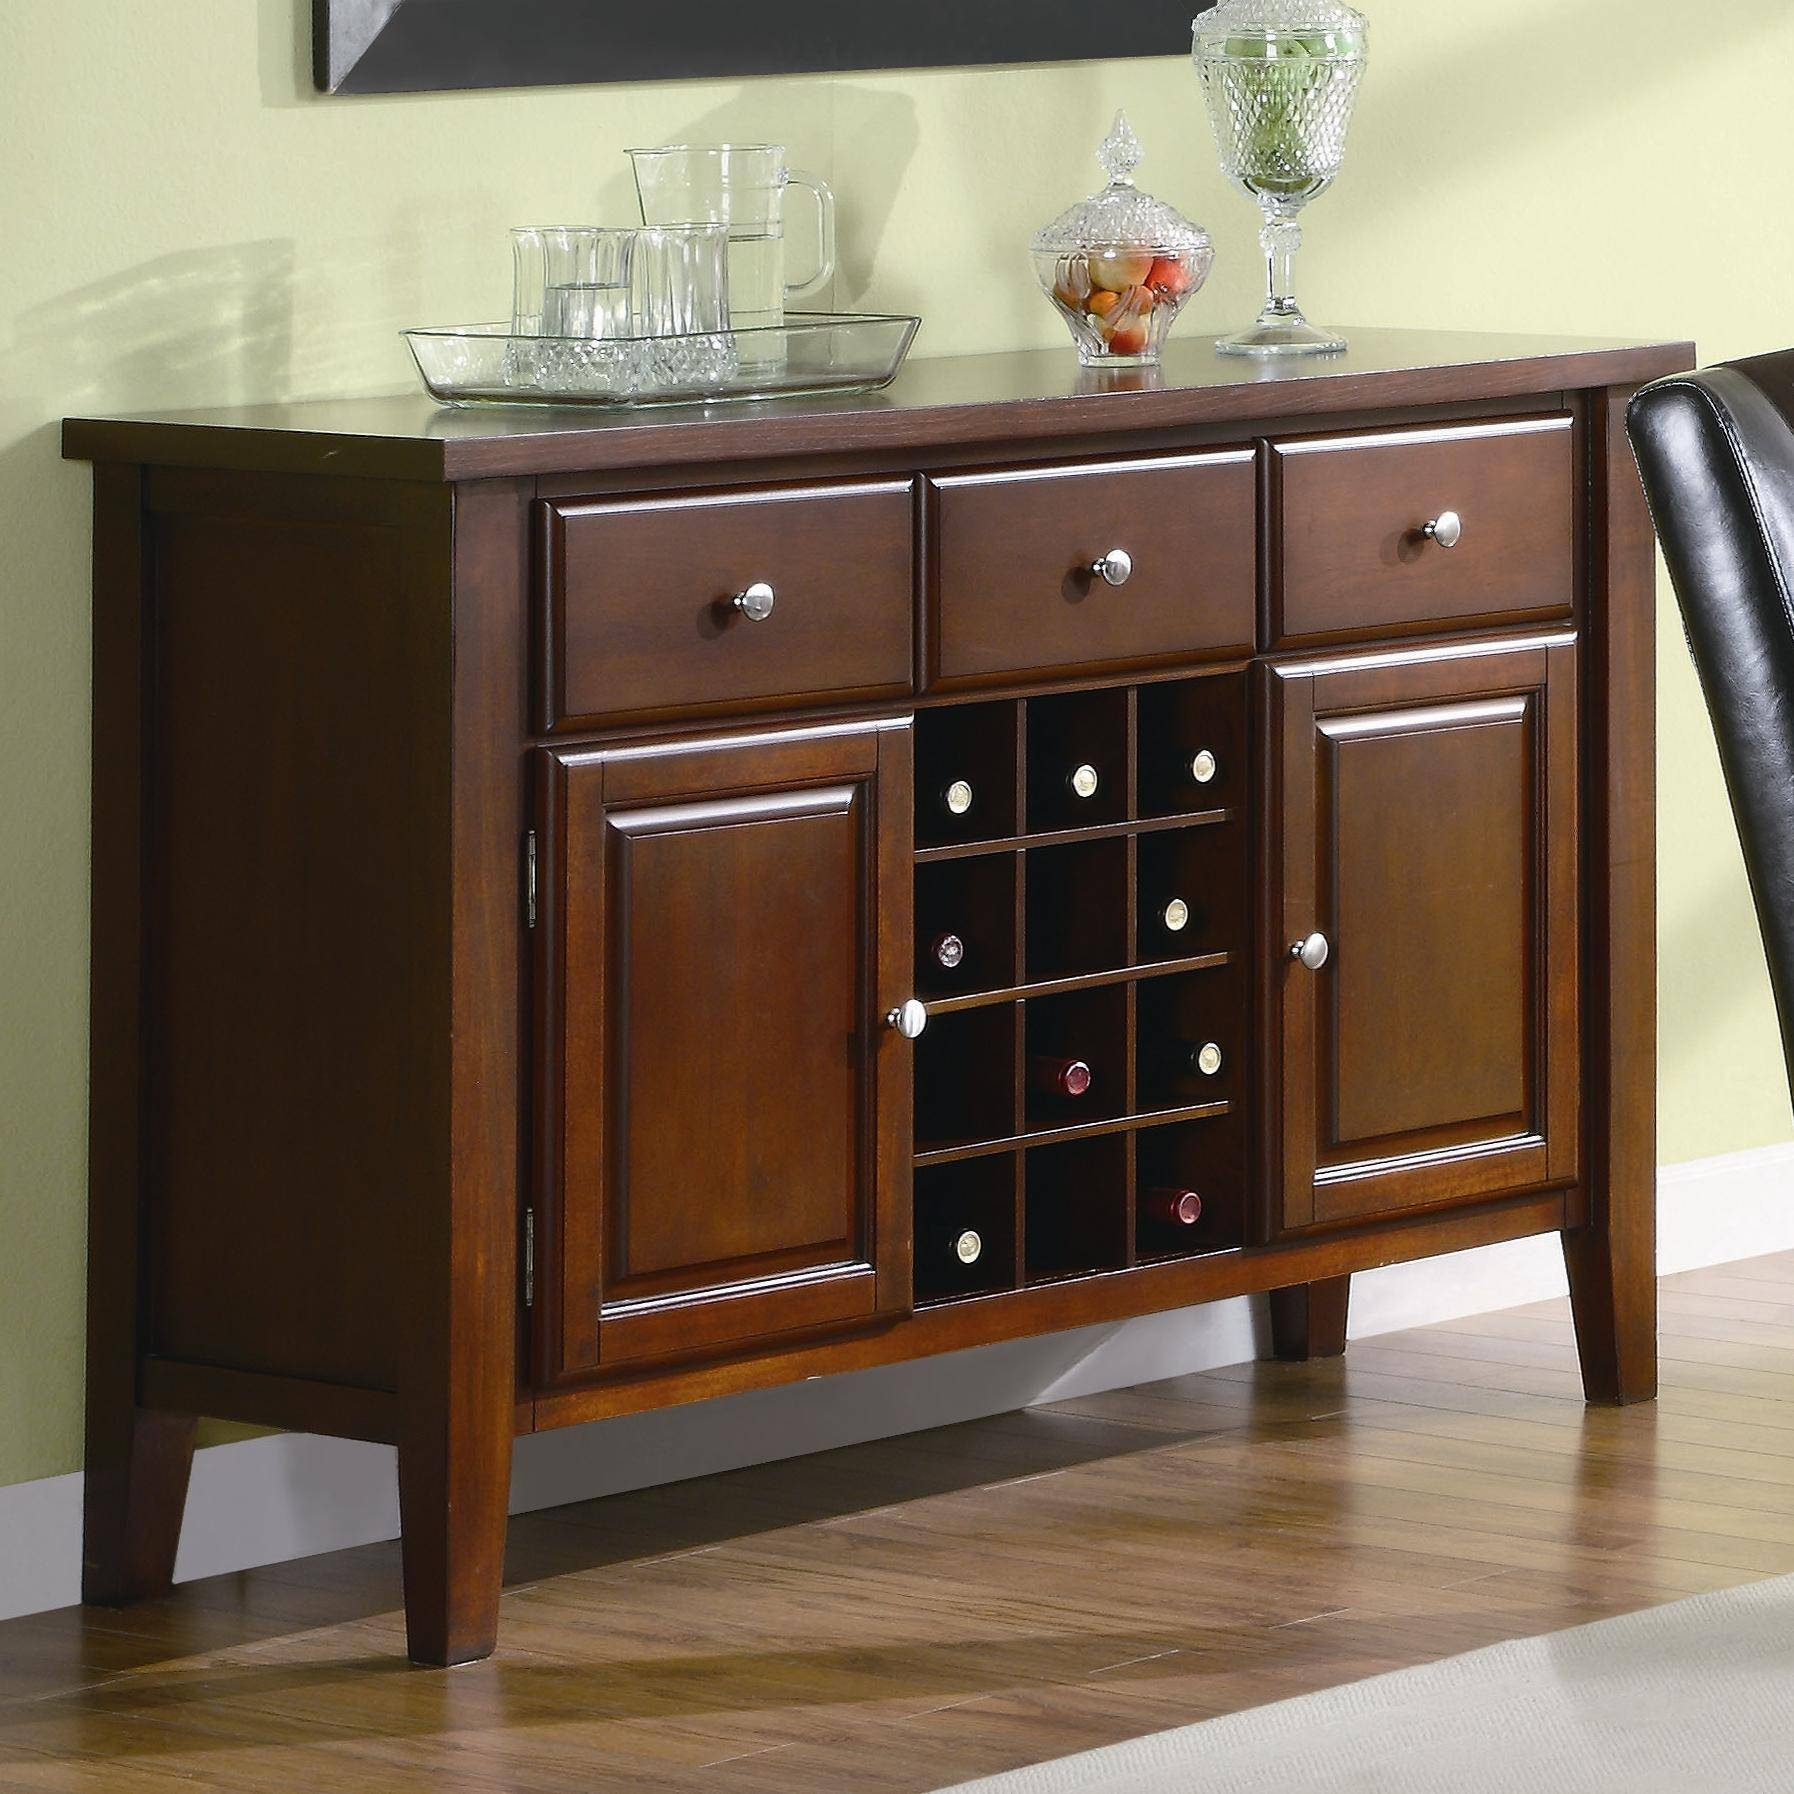 Dining Room: Exquisite Dining Room Servers With Best Pair With Most Recent Dining Room Servers And Sideboards (#8 of 15)